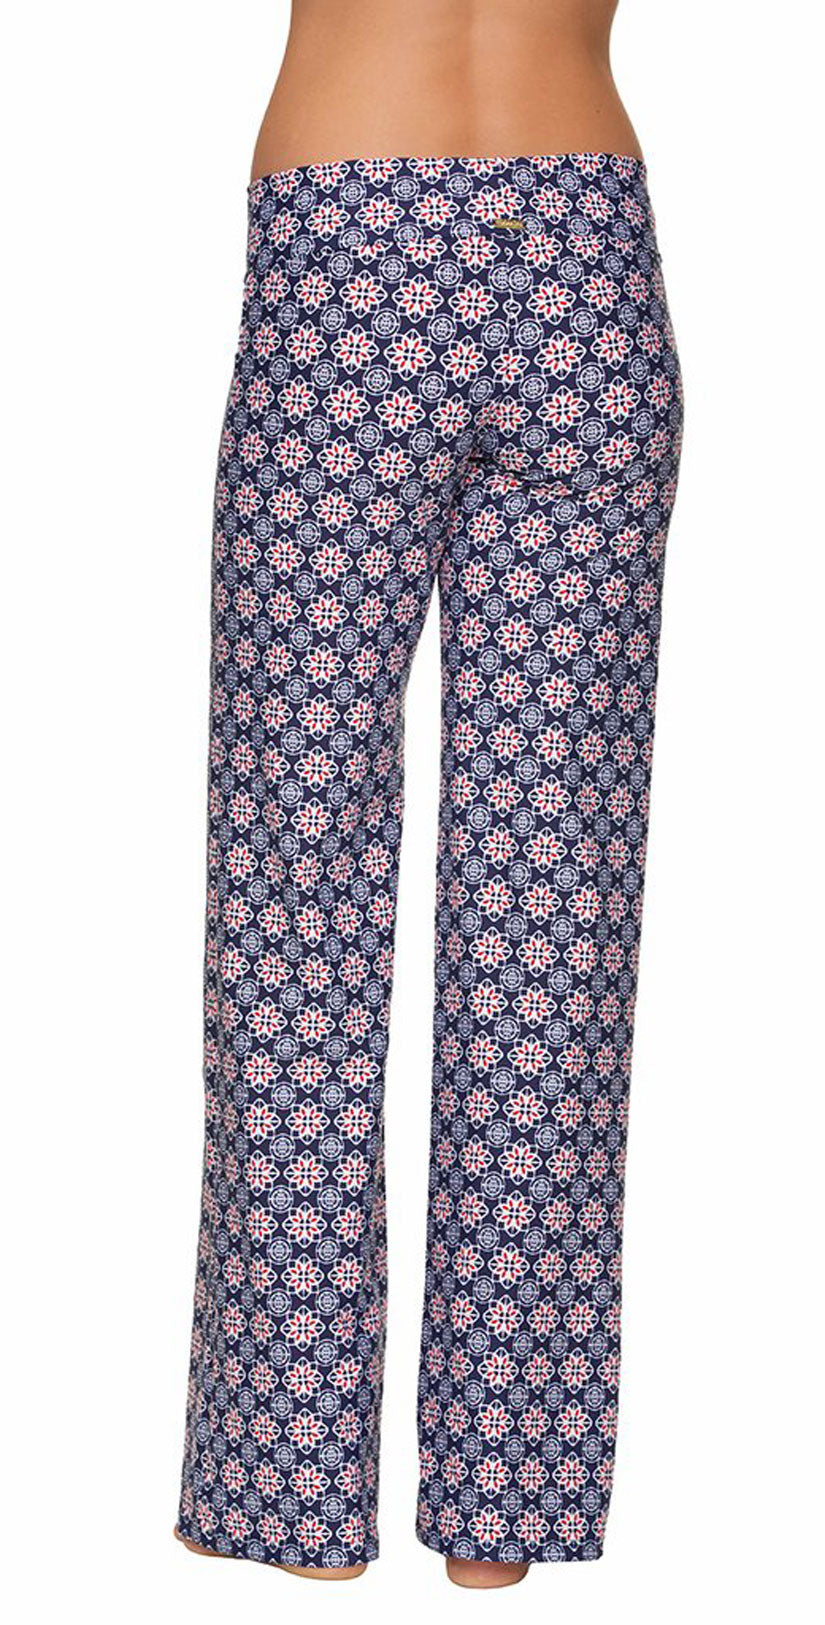 Helen Jon Fold-Over Beach Pant in Compass Geo back